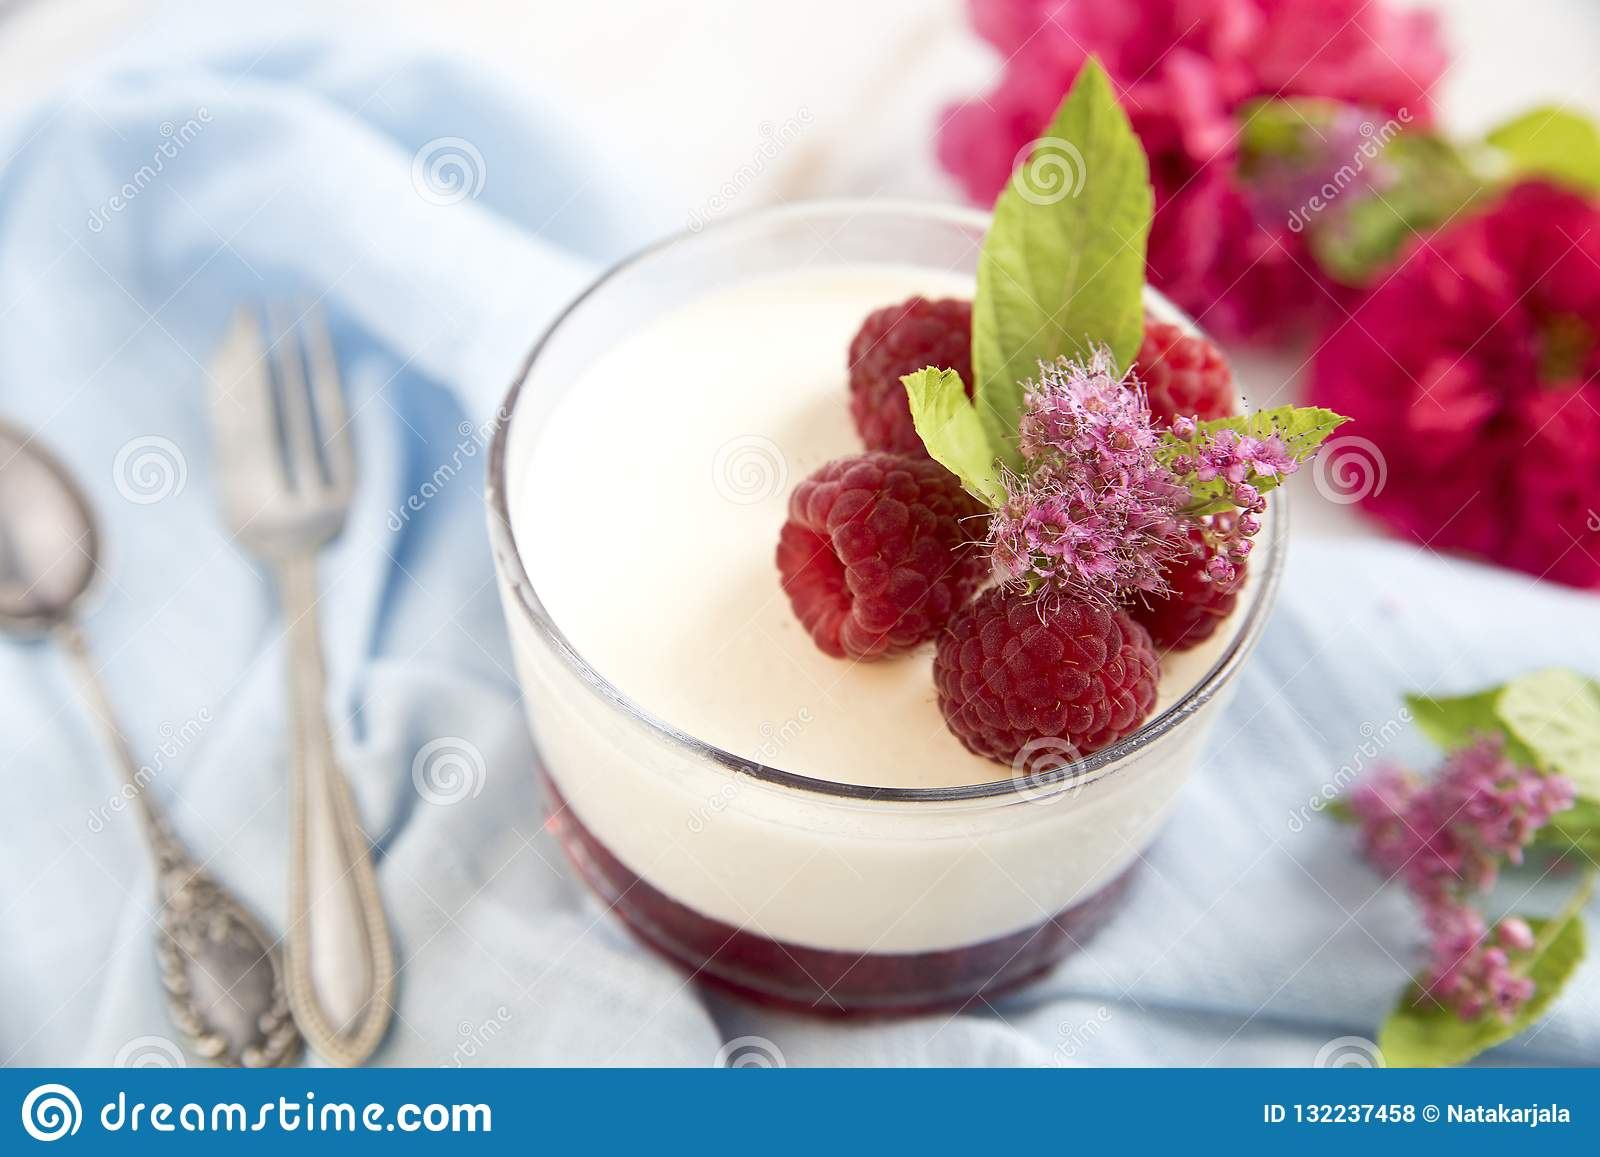 Great panacotta dessert with raspberries, on a blue background and vintage spoon and fork.